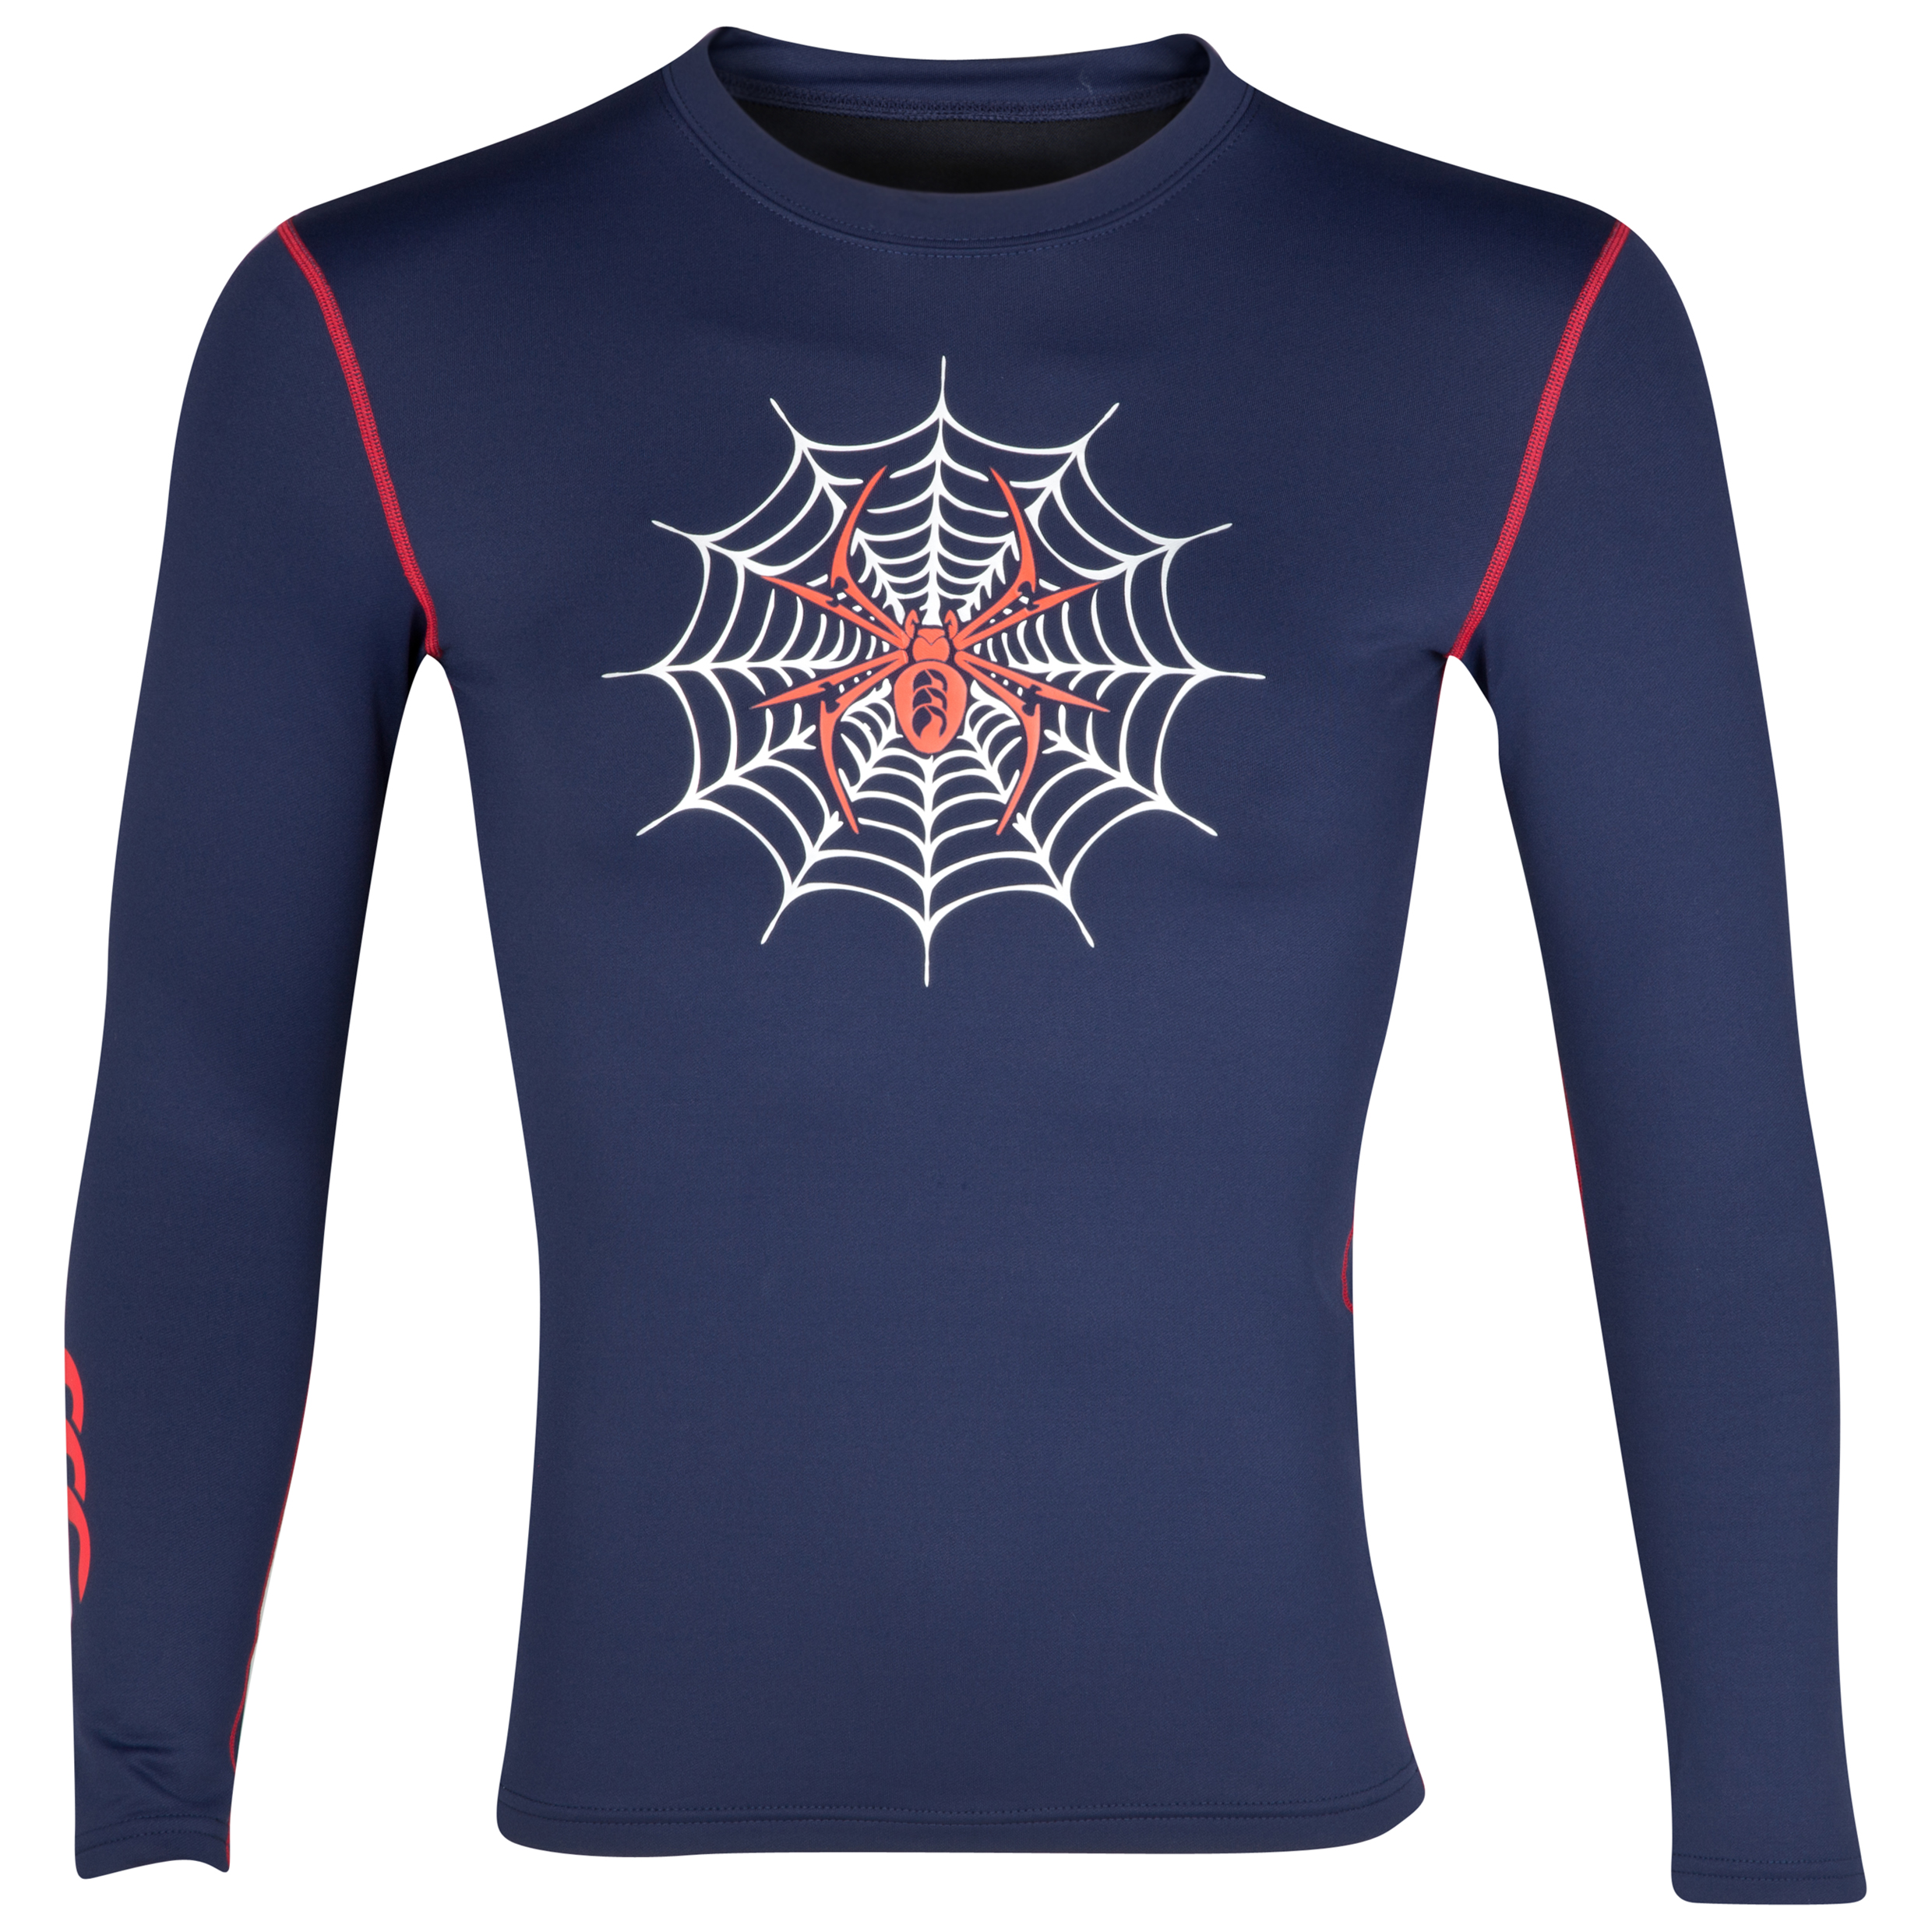 Canterbury Spider Cold Baselayer Top - Long Sleeve - Navy